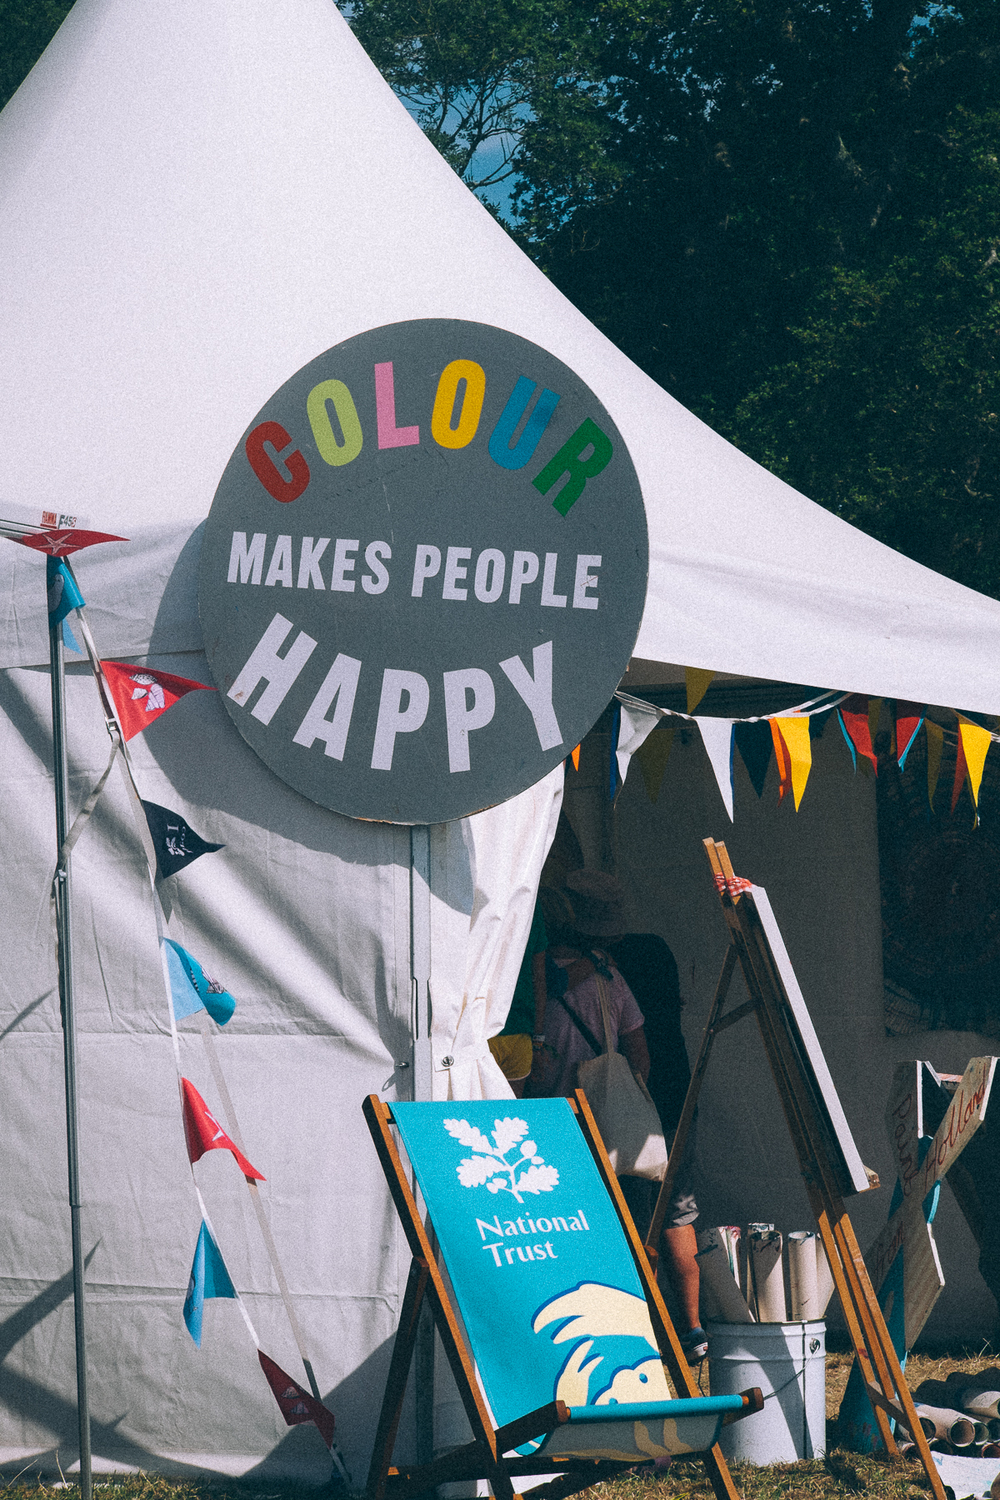 Colour makes People happy, Camp Bestival 2015